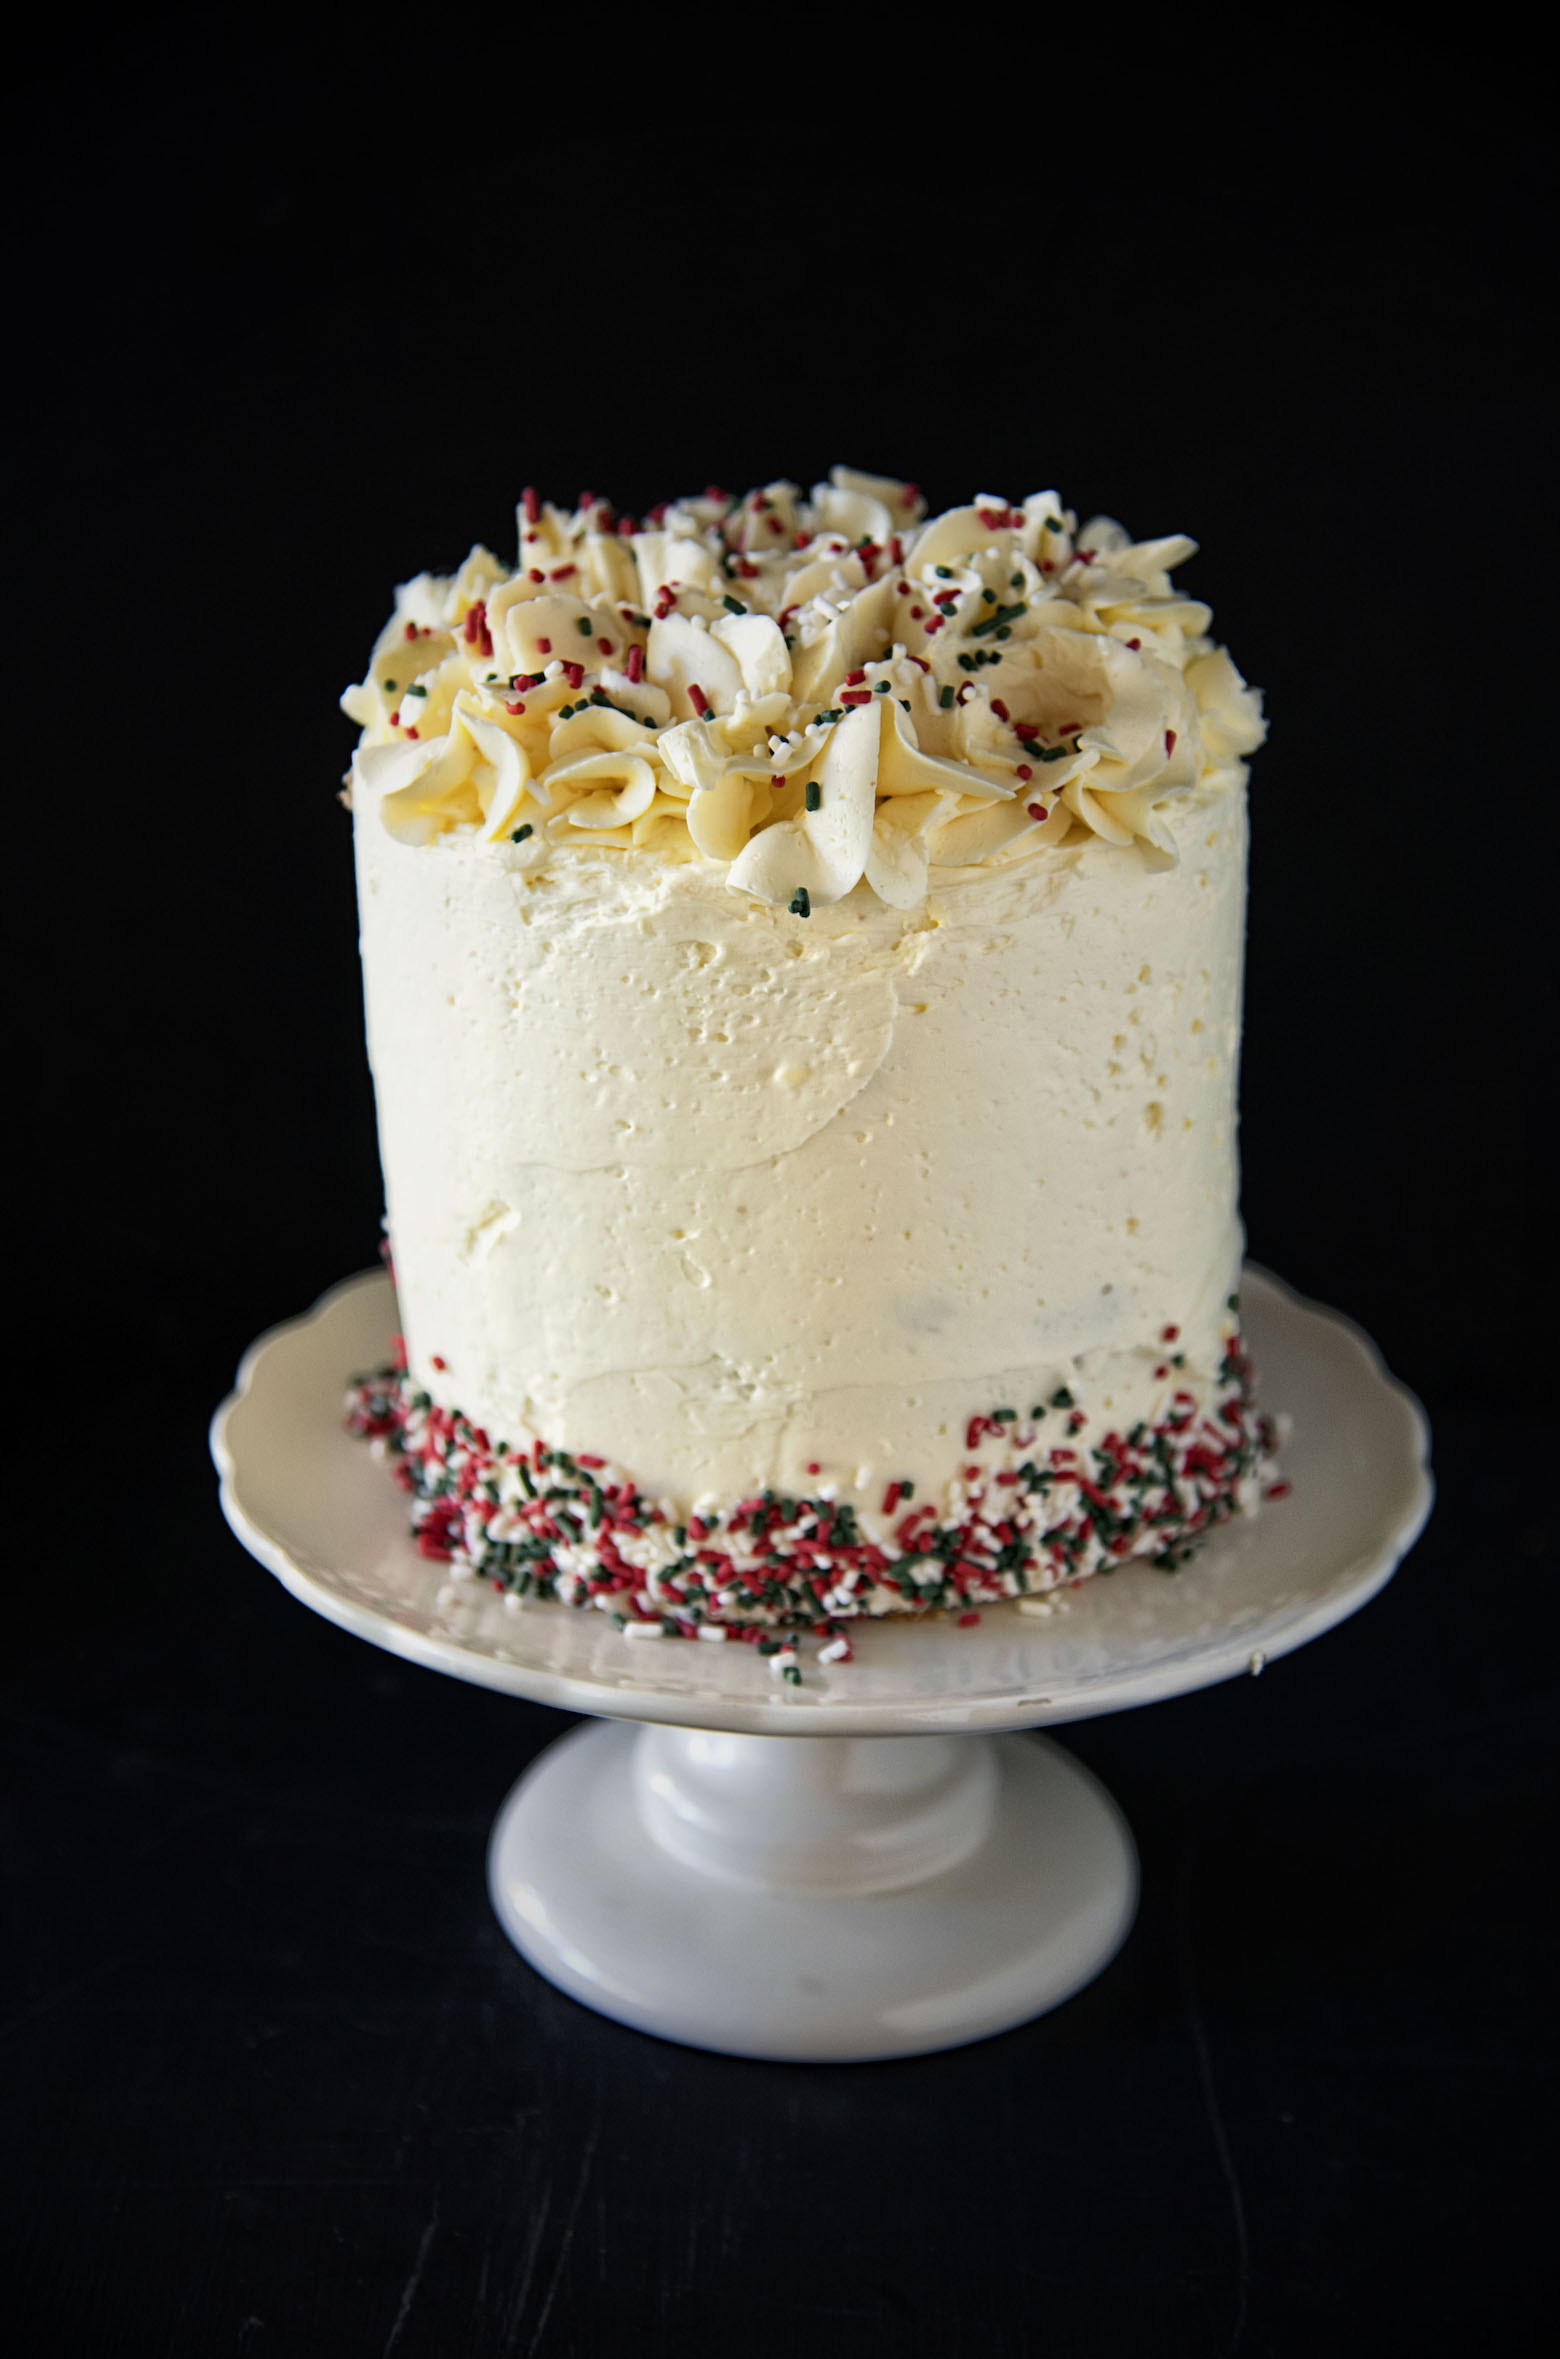 Eggnog Spiced Rum Layer Cake